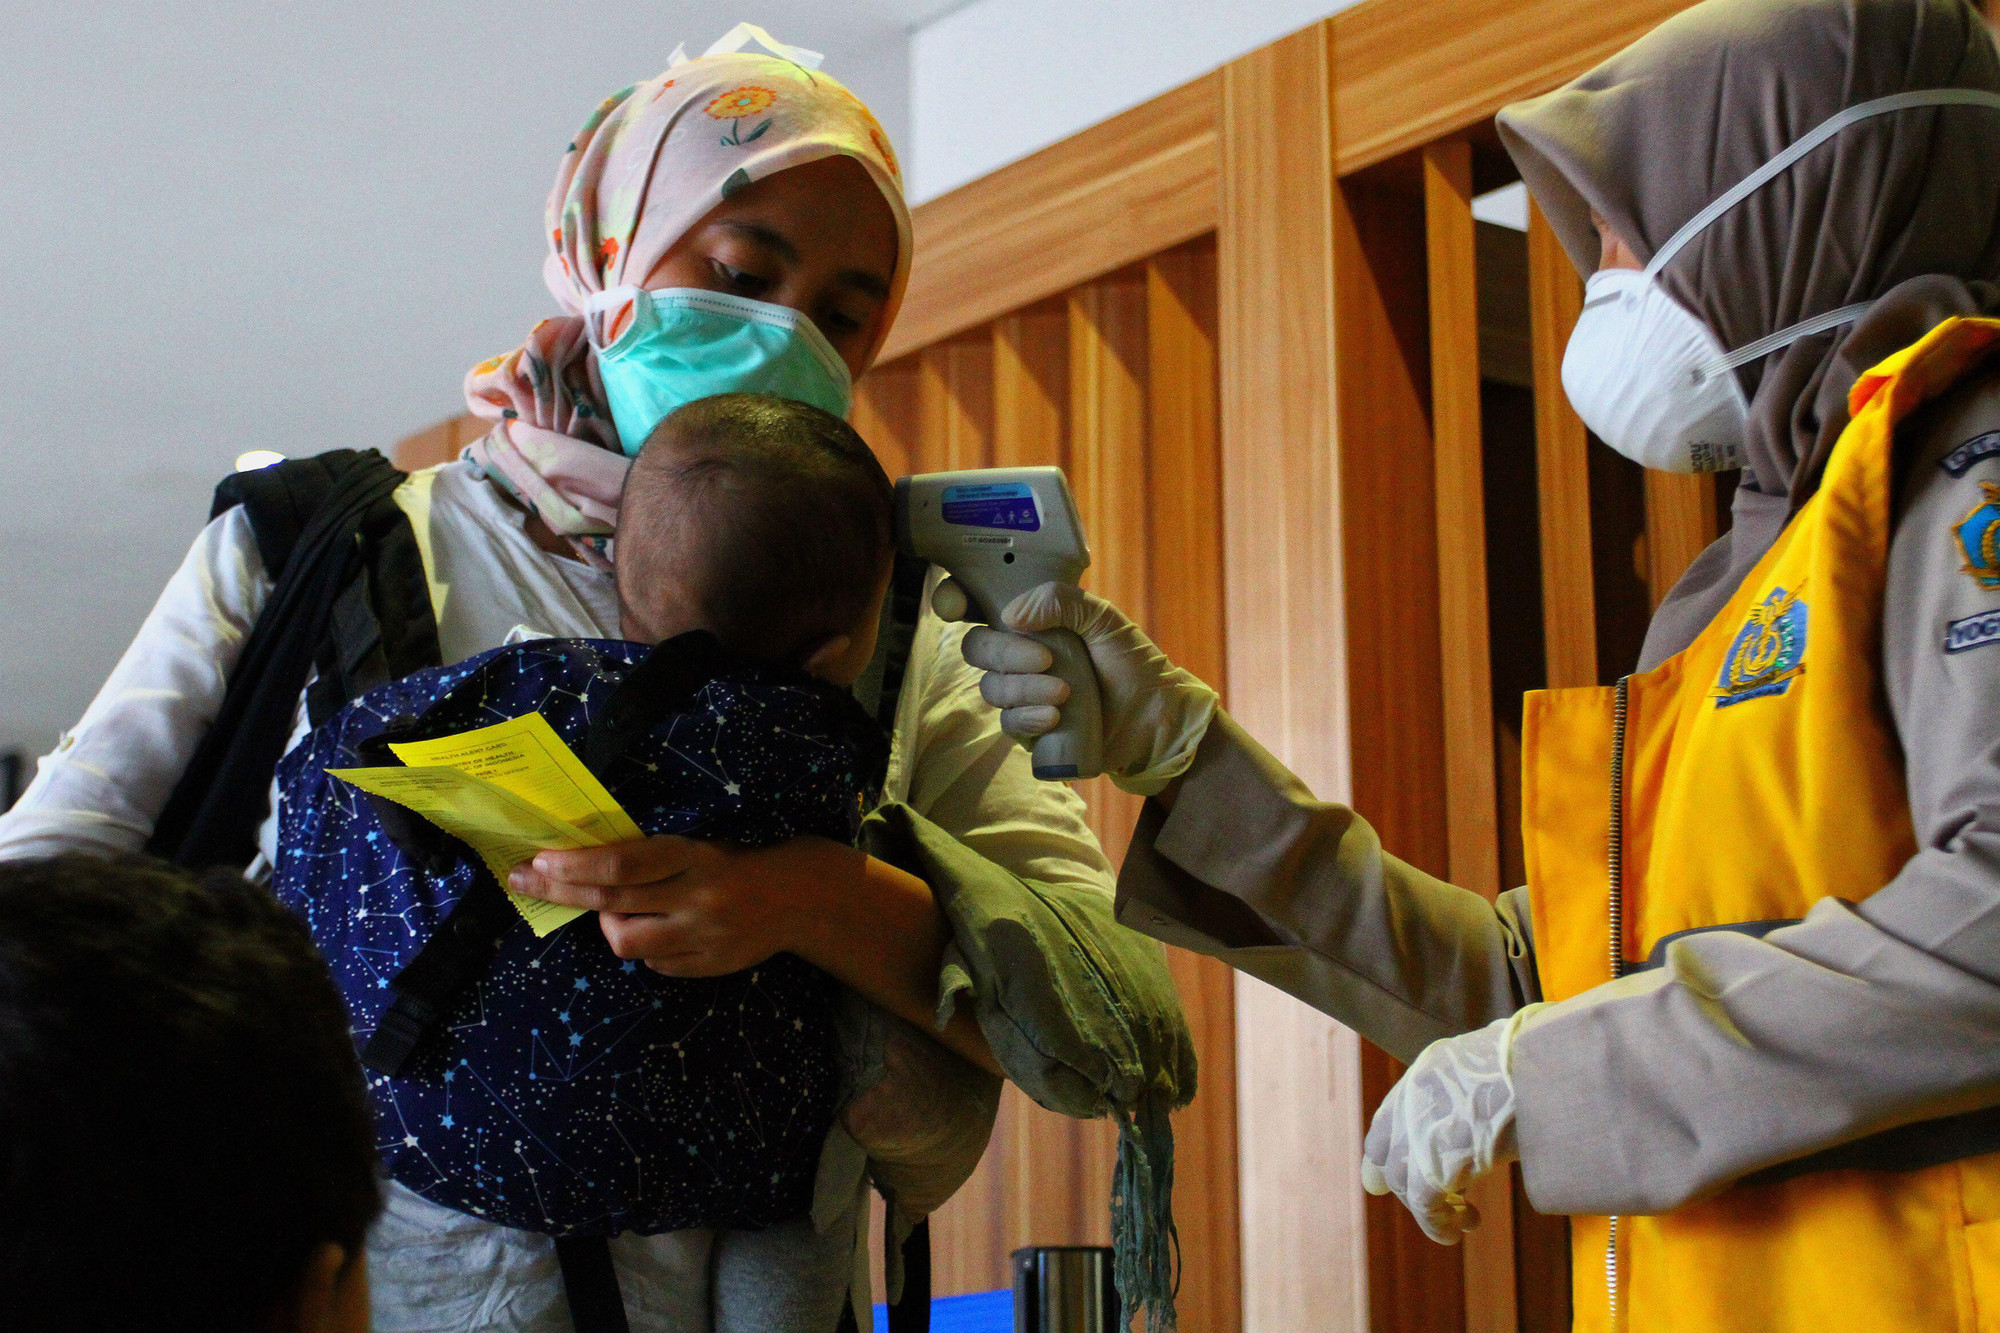 A woman in a surgical mask holds a baby while a healthcare worker checks the baby's temperature.